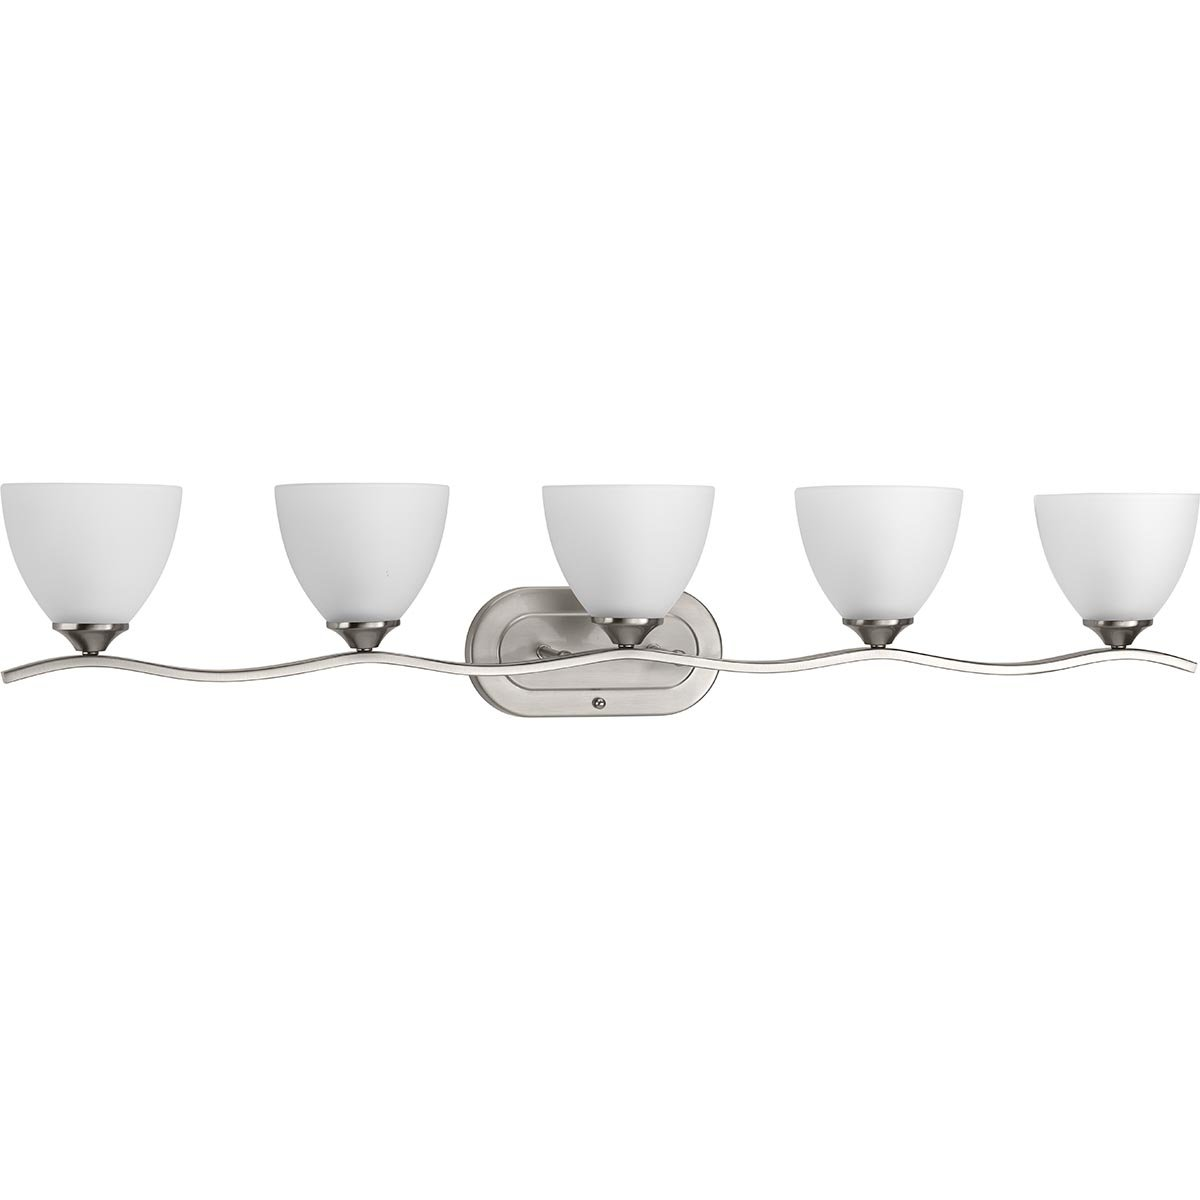 Progress Lighting p300099 – 009 Laird five-light Bath ,グレー B078H6CVD4